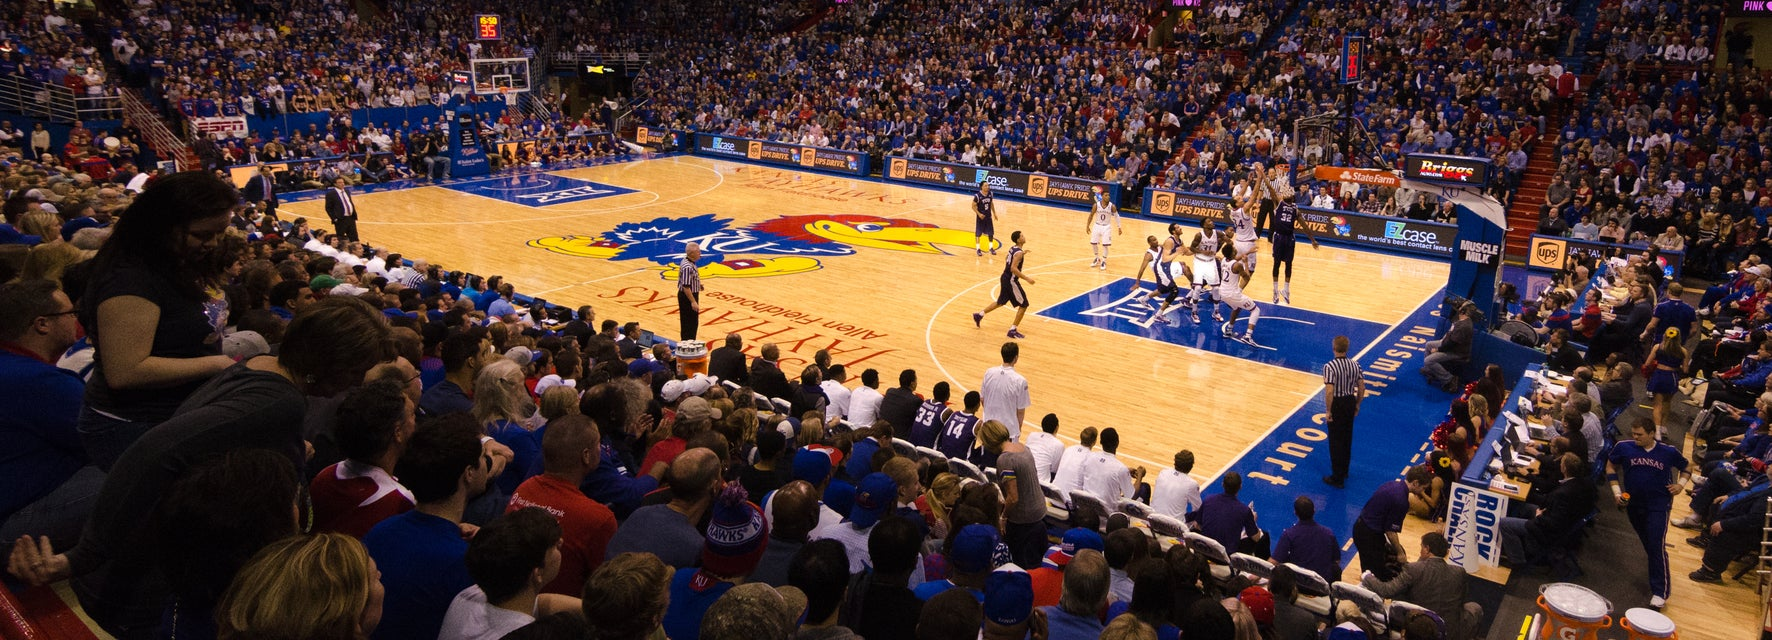 Kansas Basketball Tickets